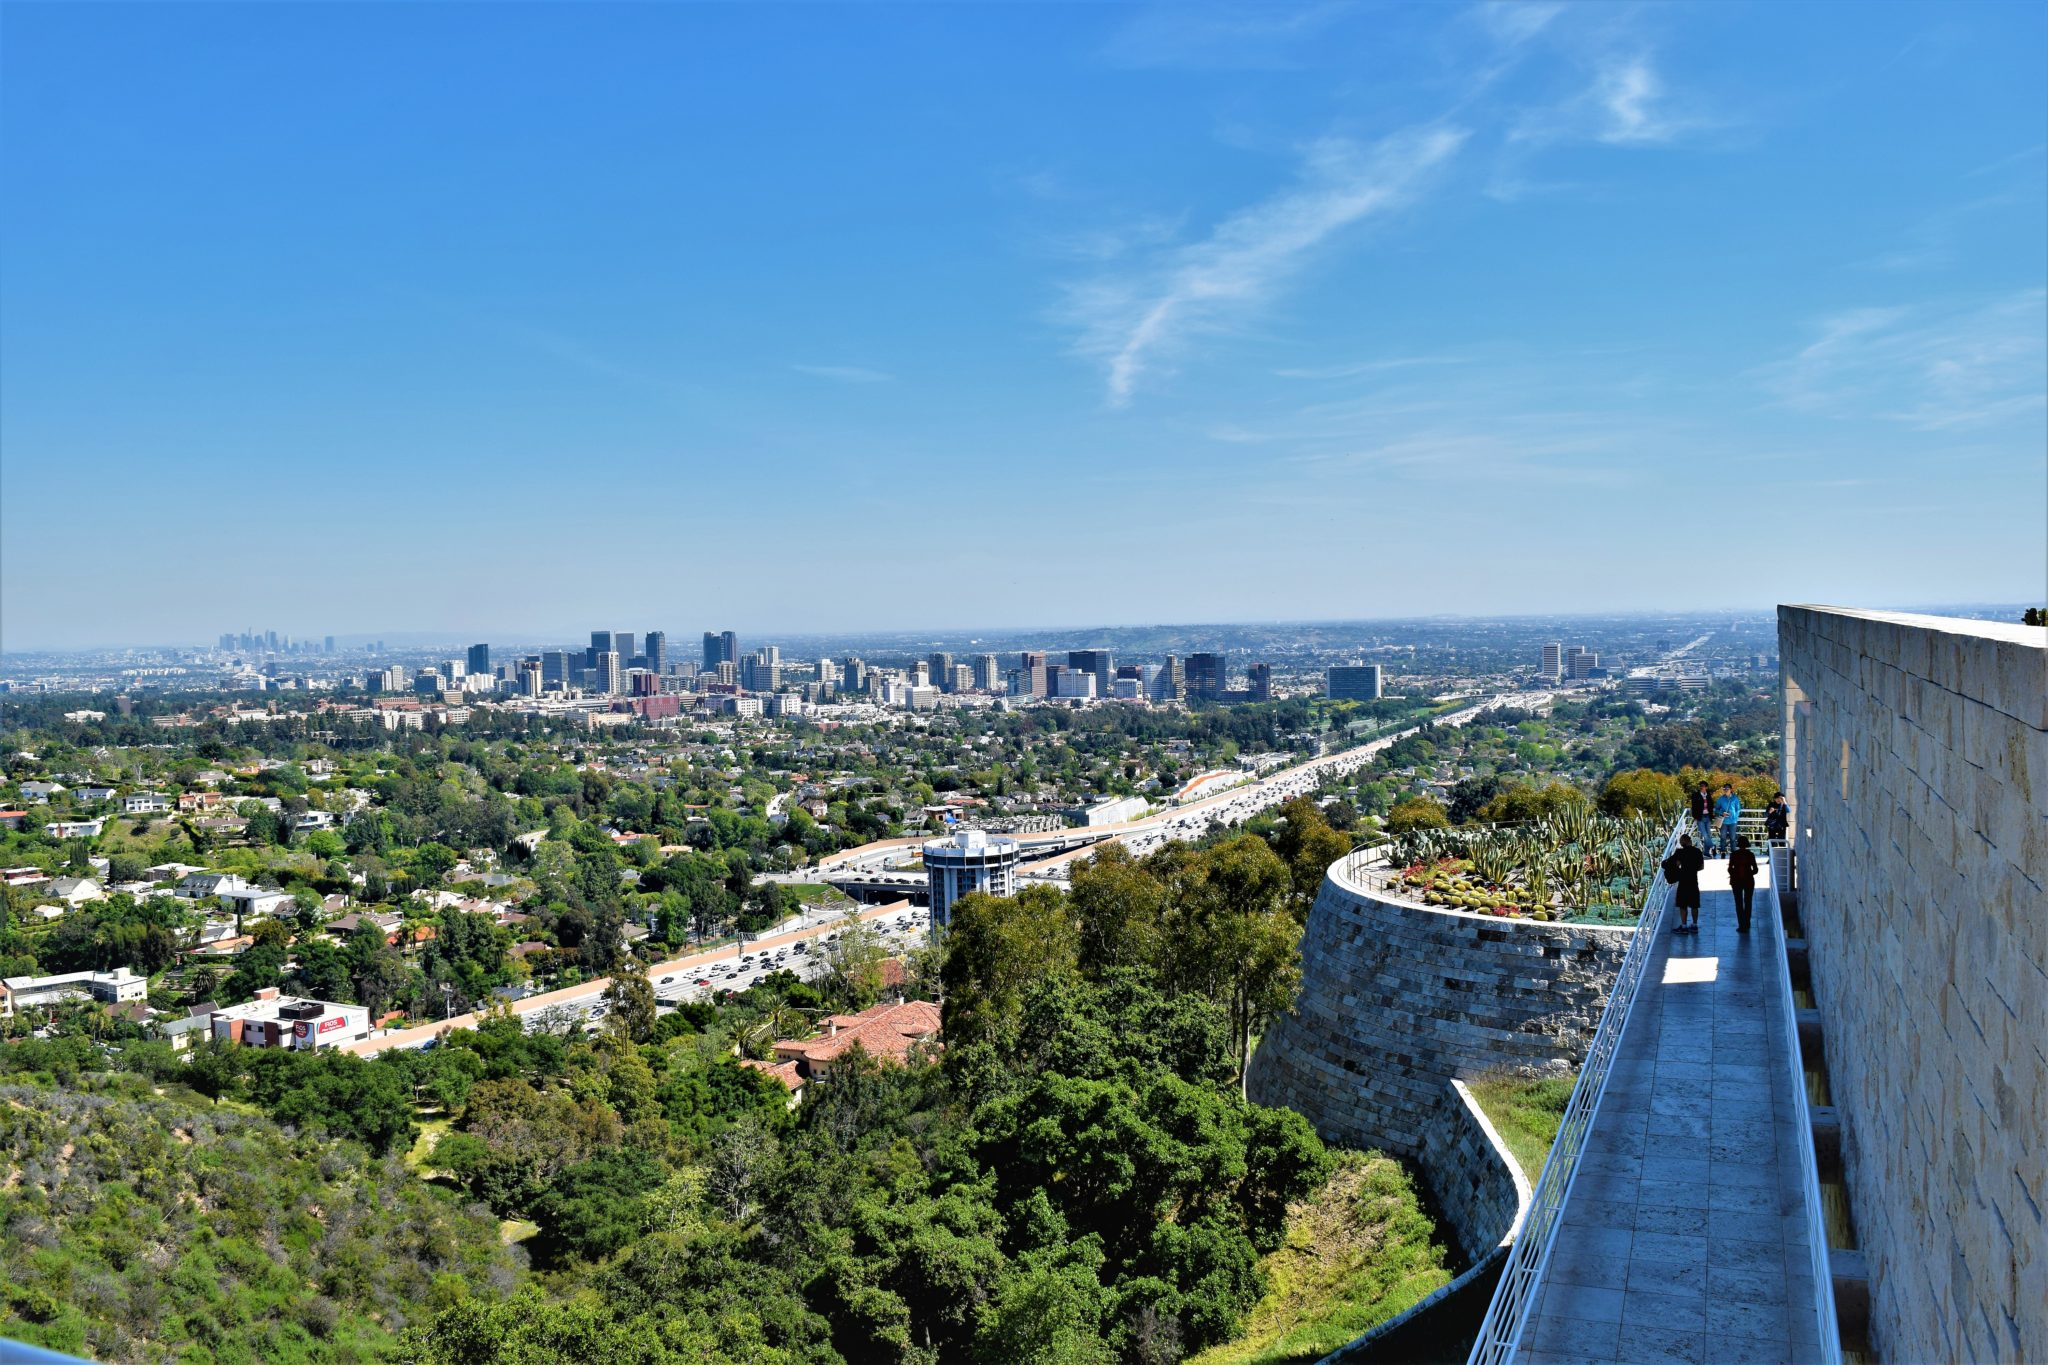 Getty Center view of los angeles, california